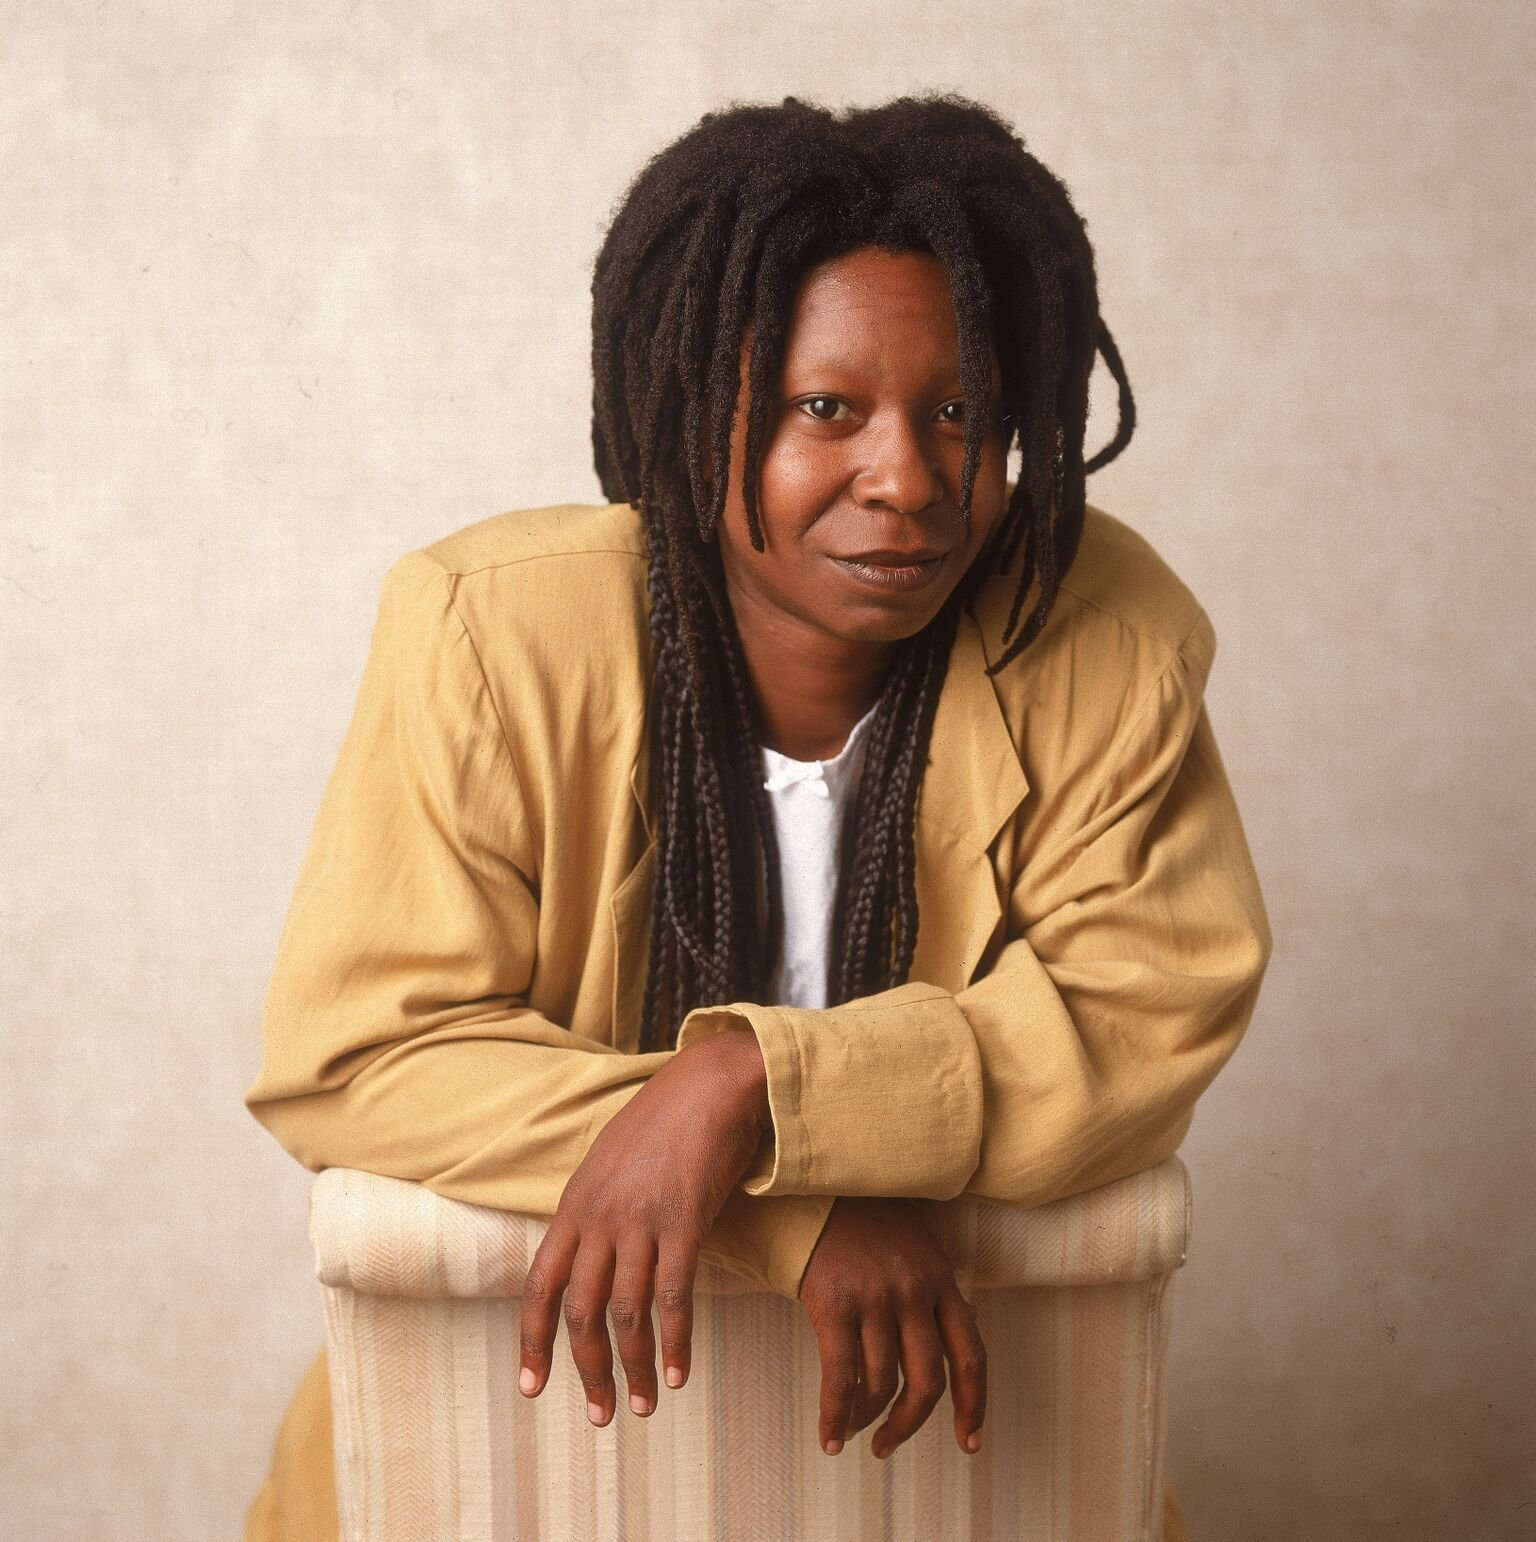 American actor and comedian Whoopi Goldberg leaning on a chair, 1988 | Getty Images